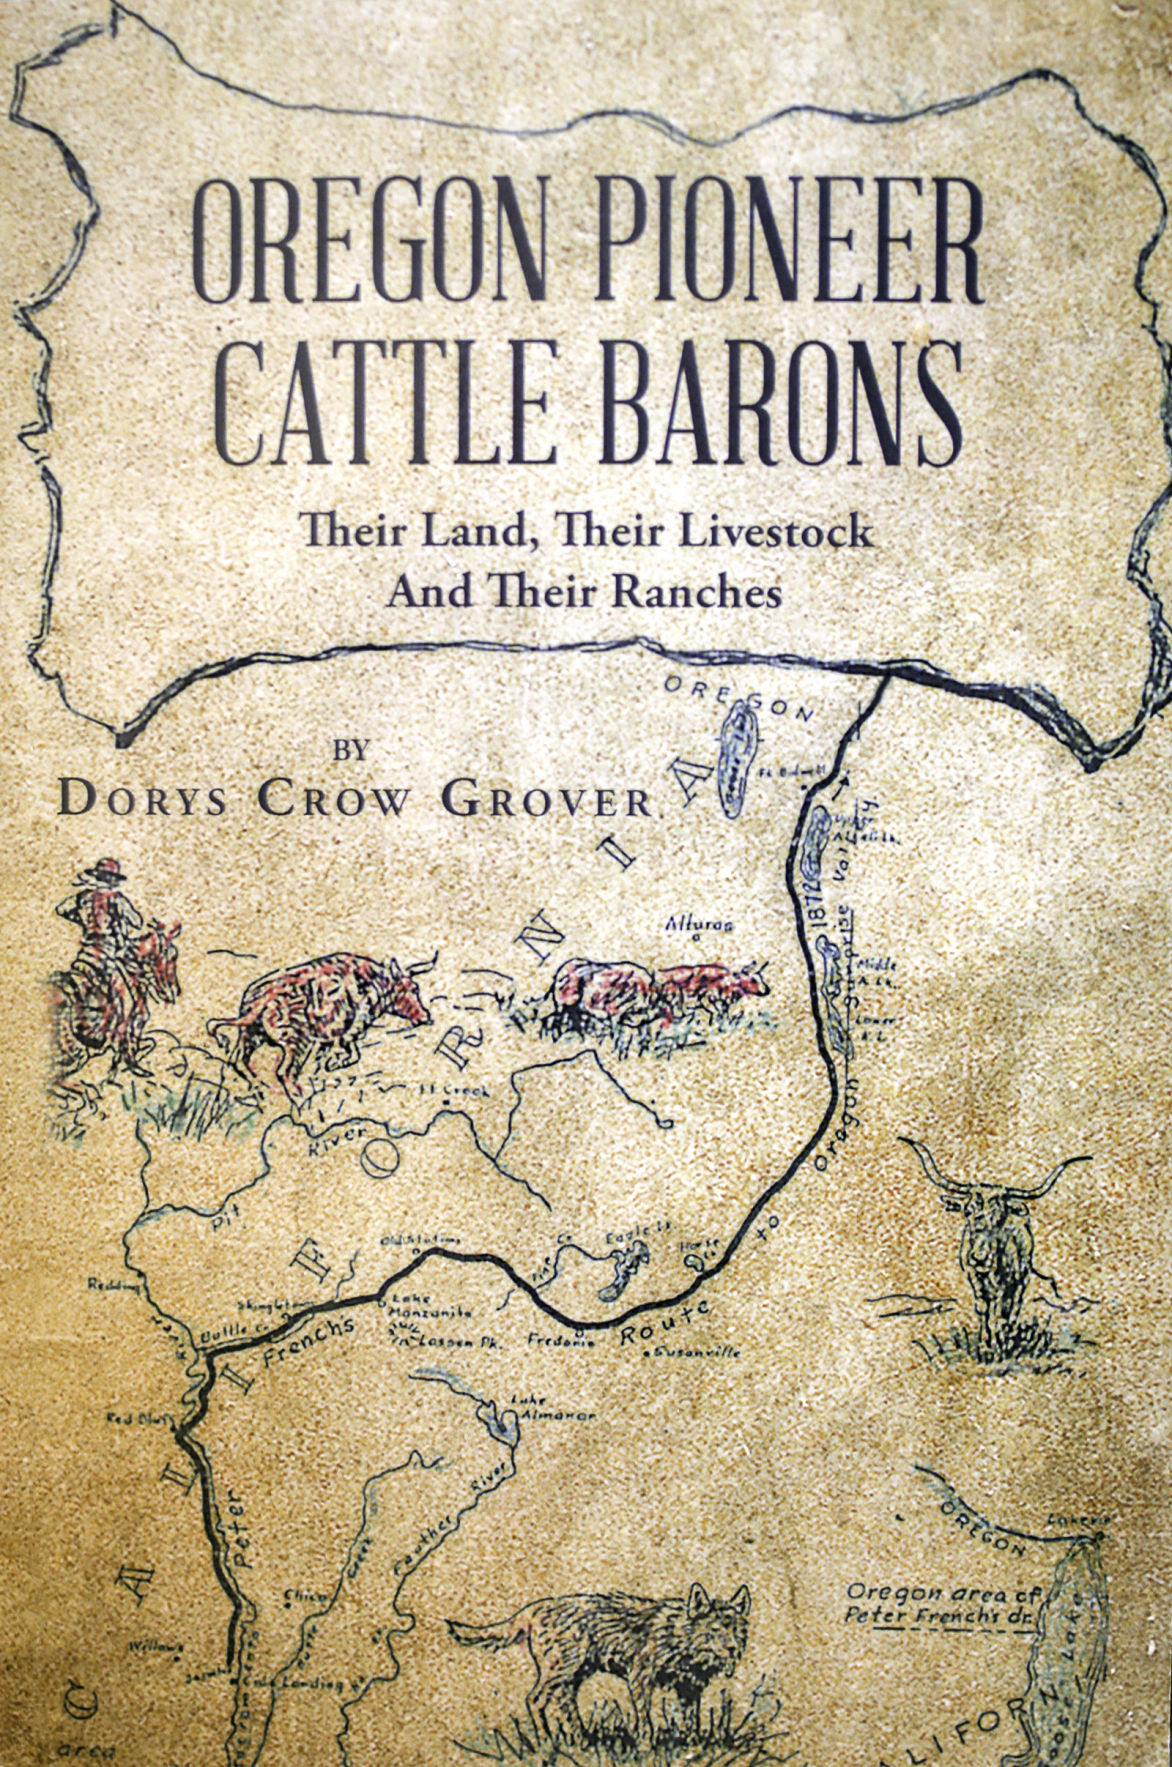 Grover ropes in cattle barons history | News | eastoregonian com